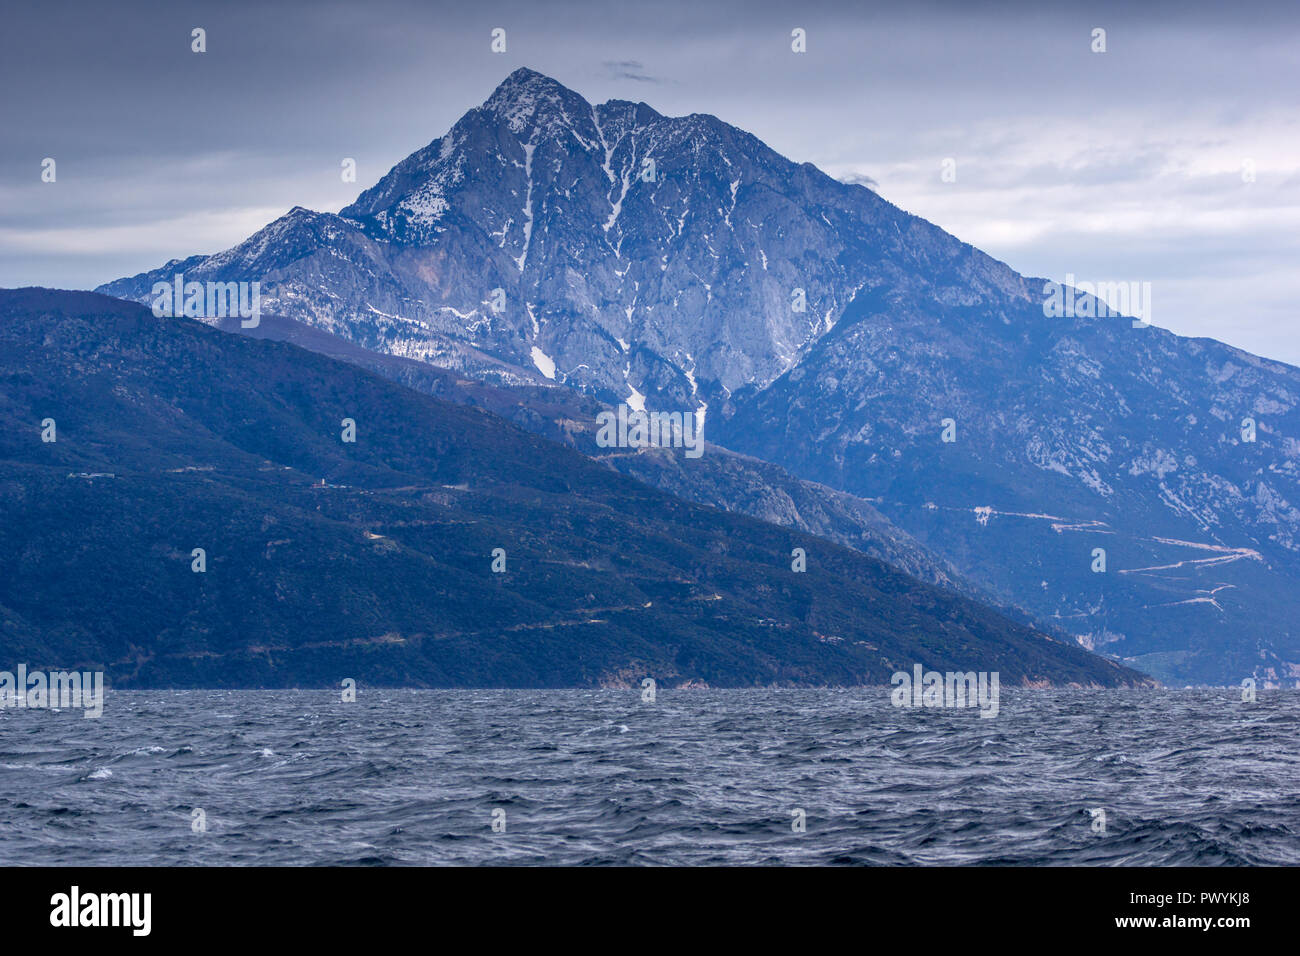 Landscape of Mount Athos in Autonomous Monastic State of the Holy Mountain, Chalkidiki, Greece - Stock Image